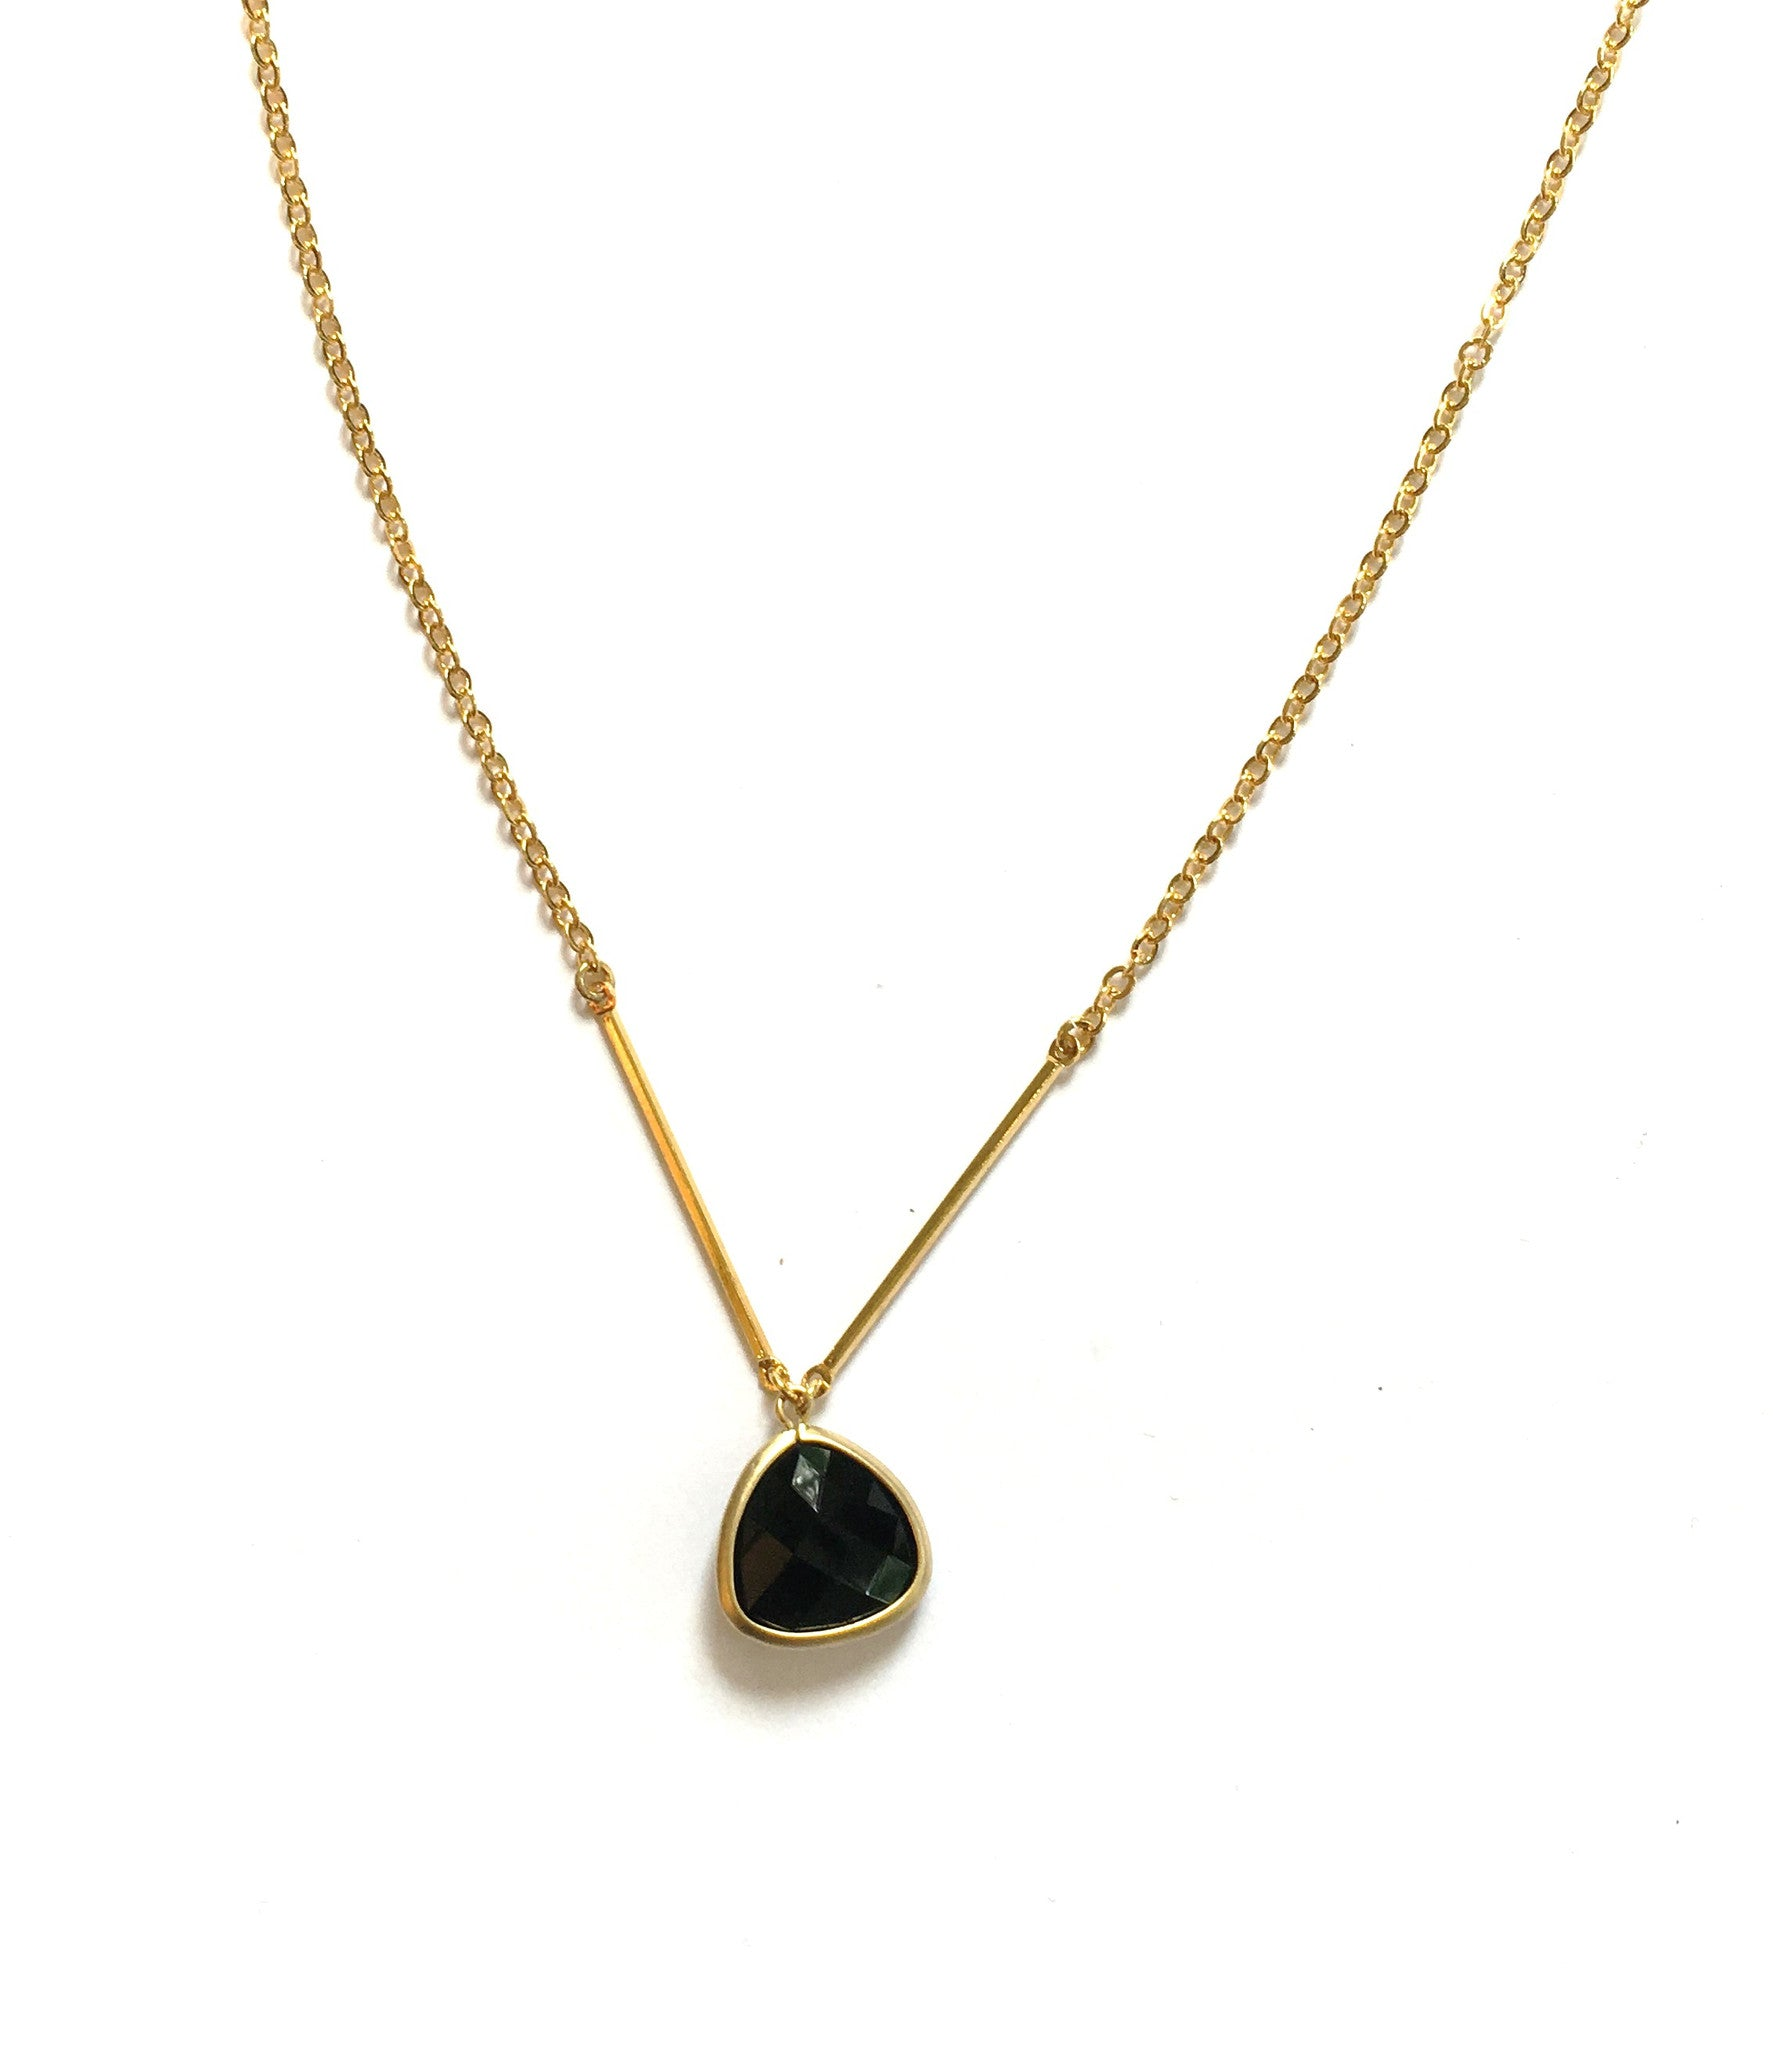 Handmade Necklace - Onyx Drop On A Delicate Chain